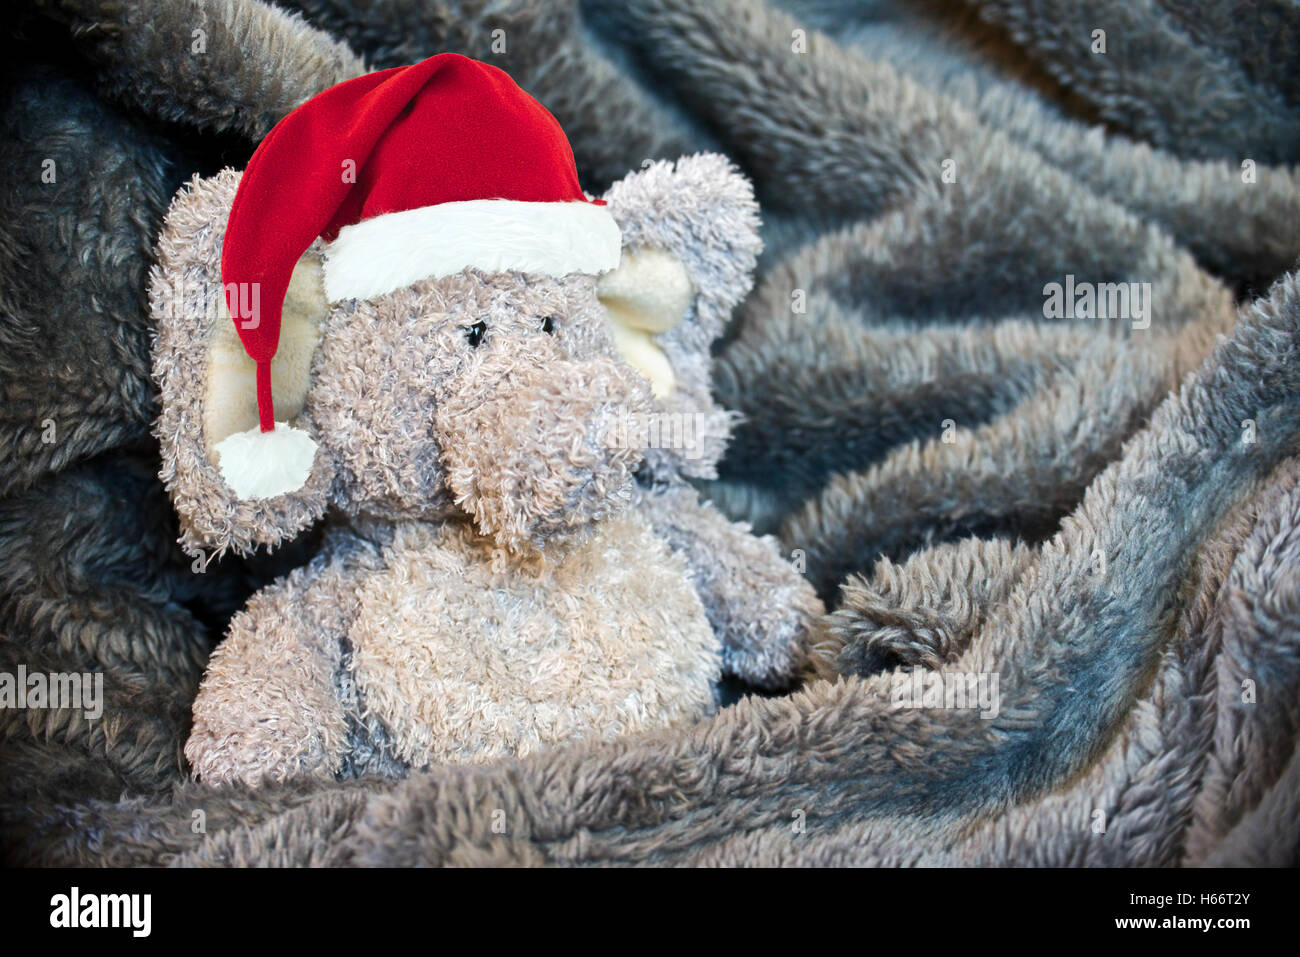 Stuffed fluffy animal with a Santa hat in a soft blanket - Stock Image